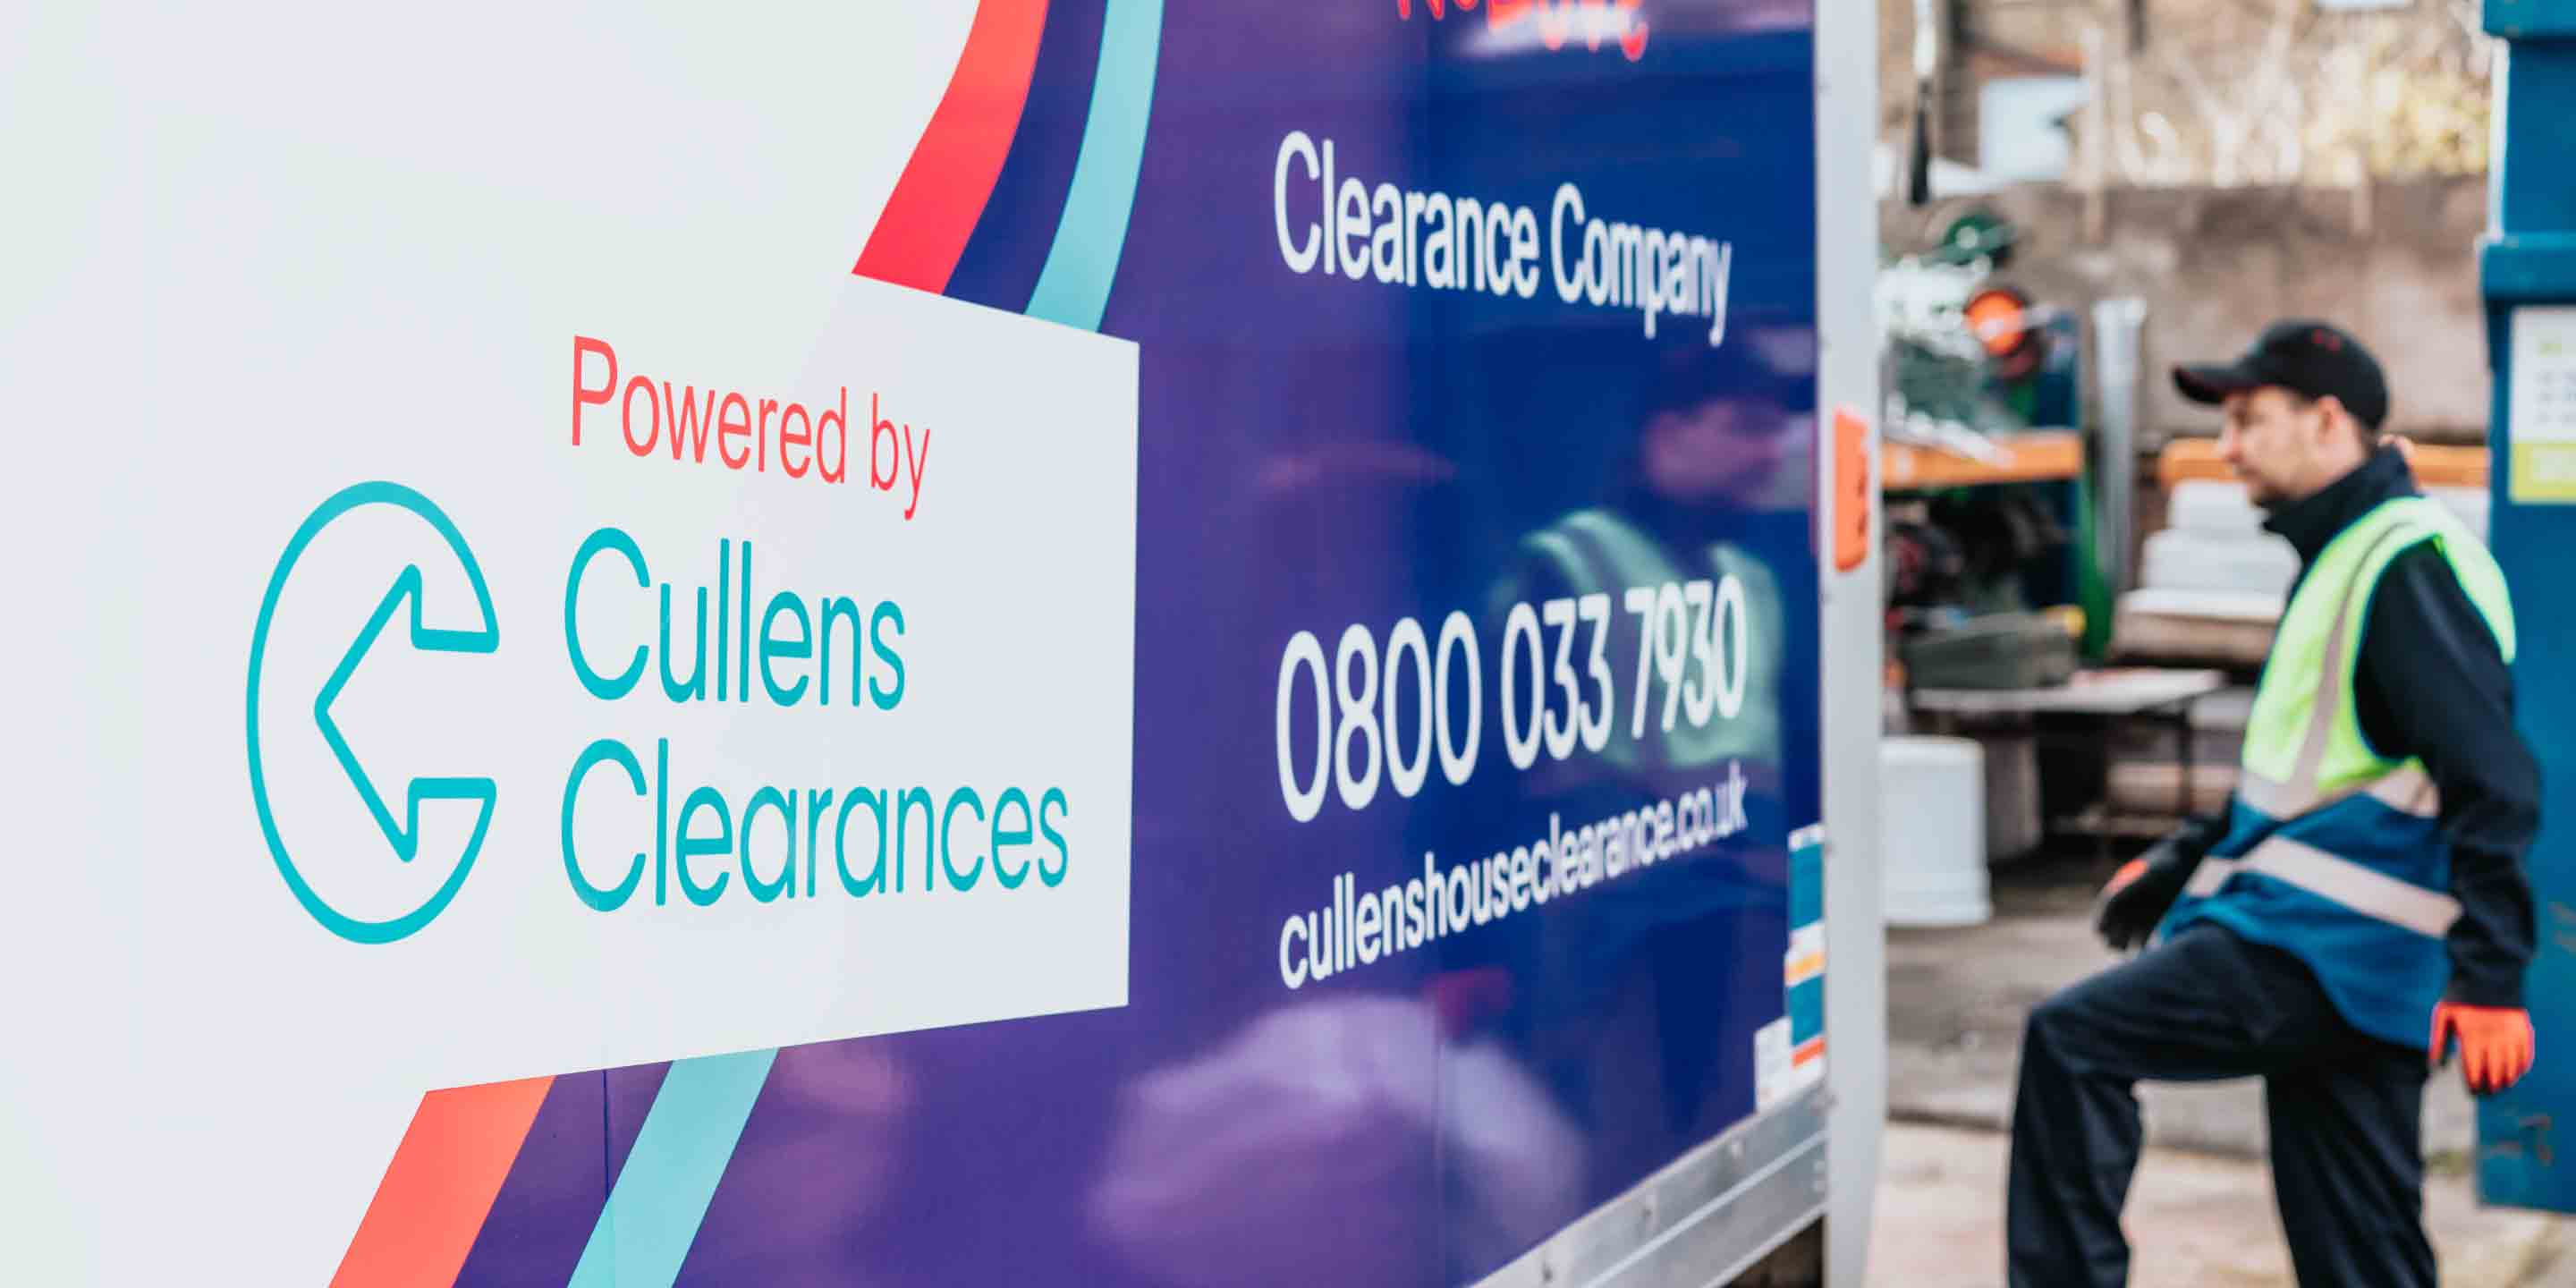 South West London Office Clearance Company